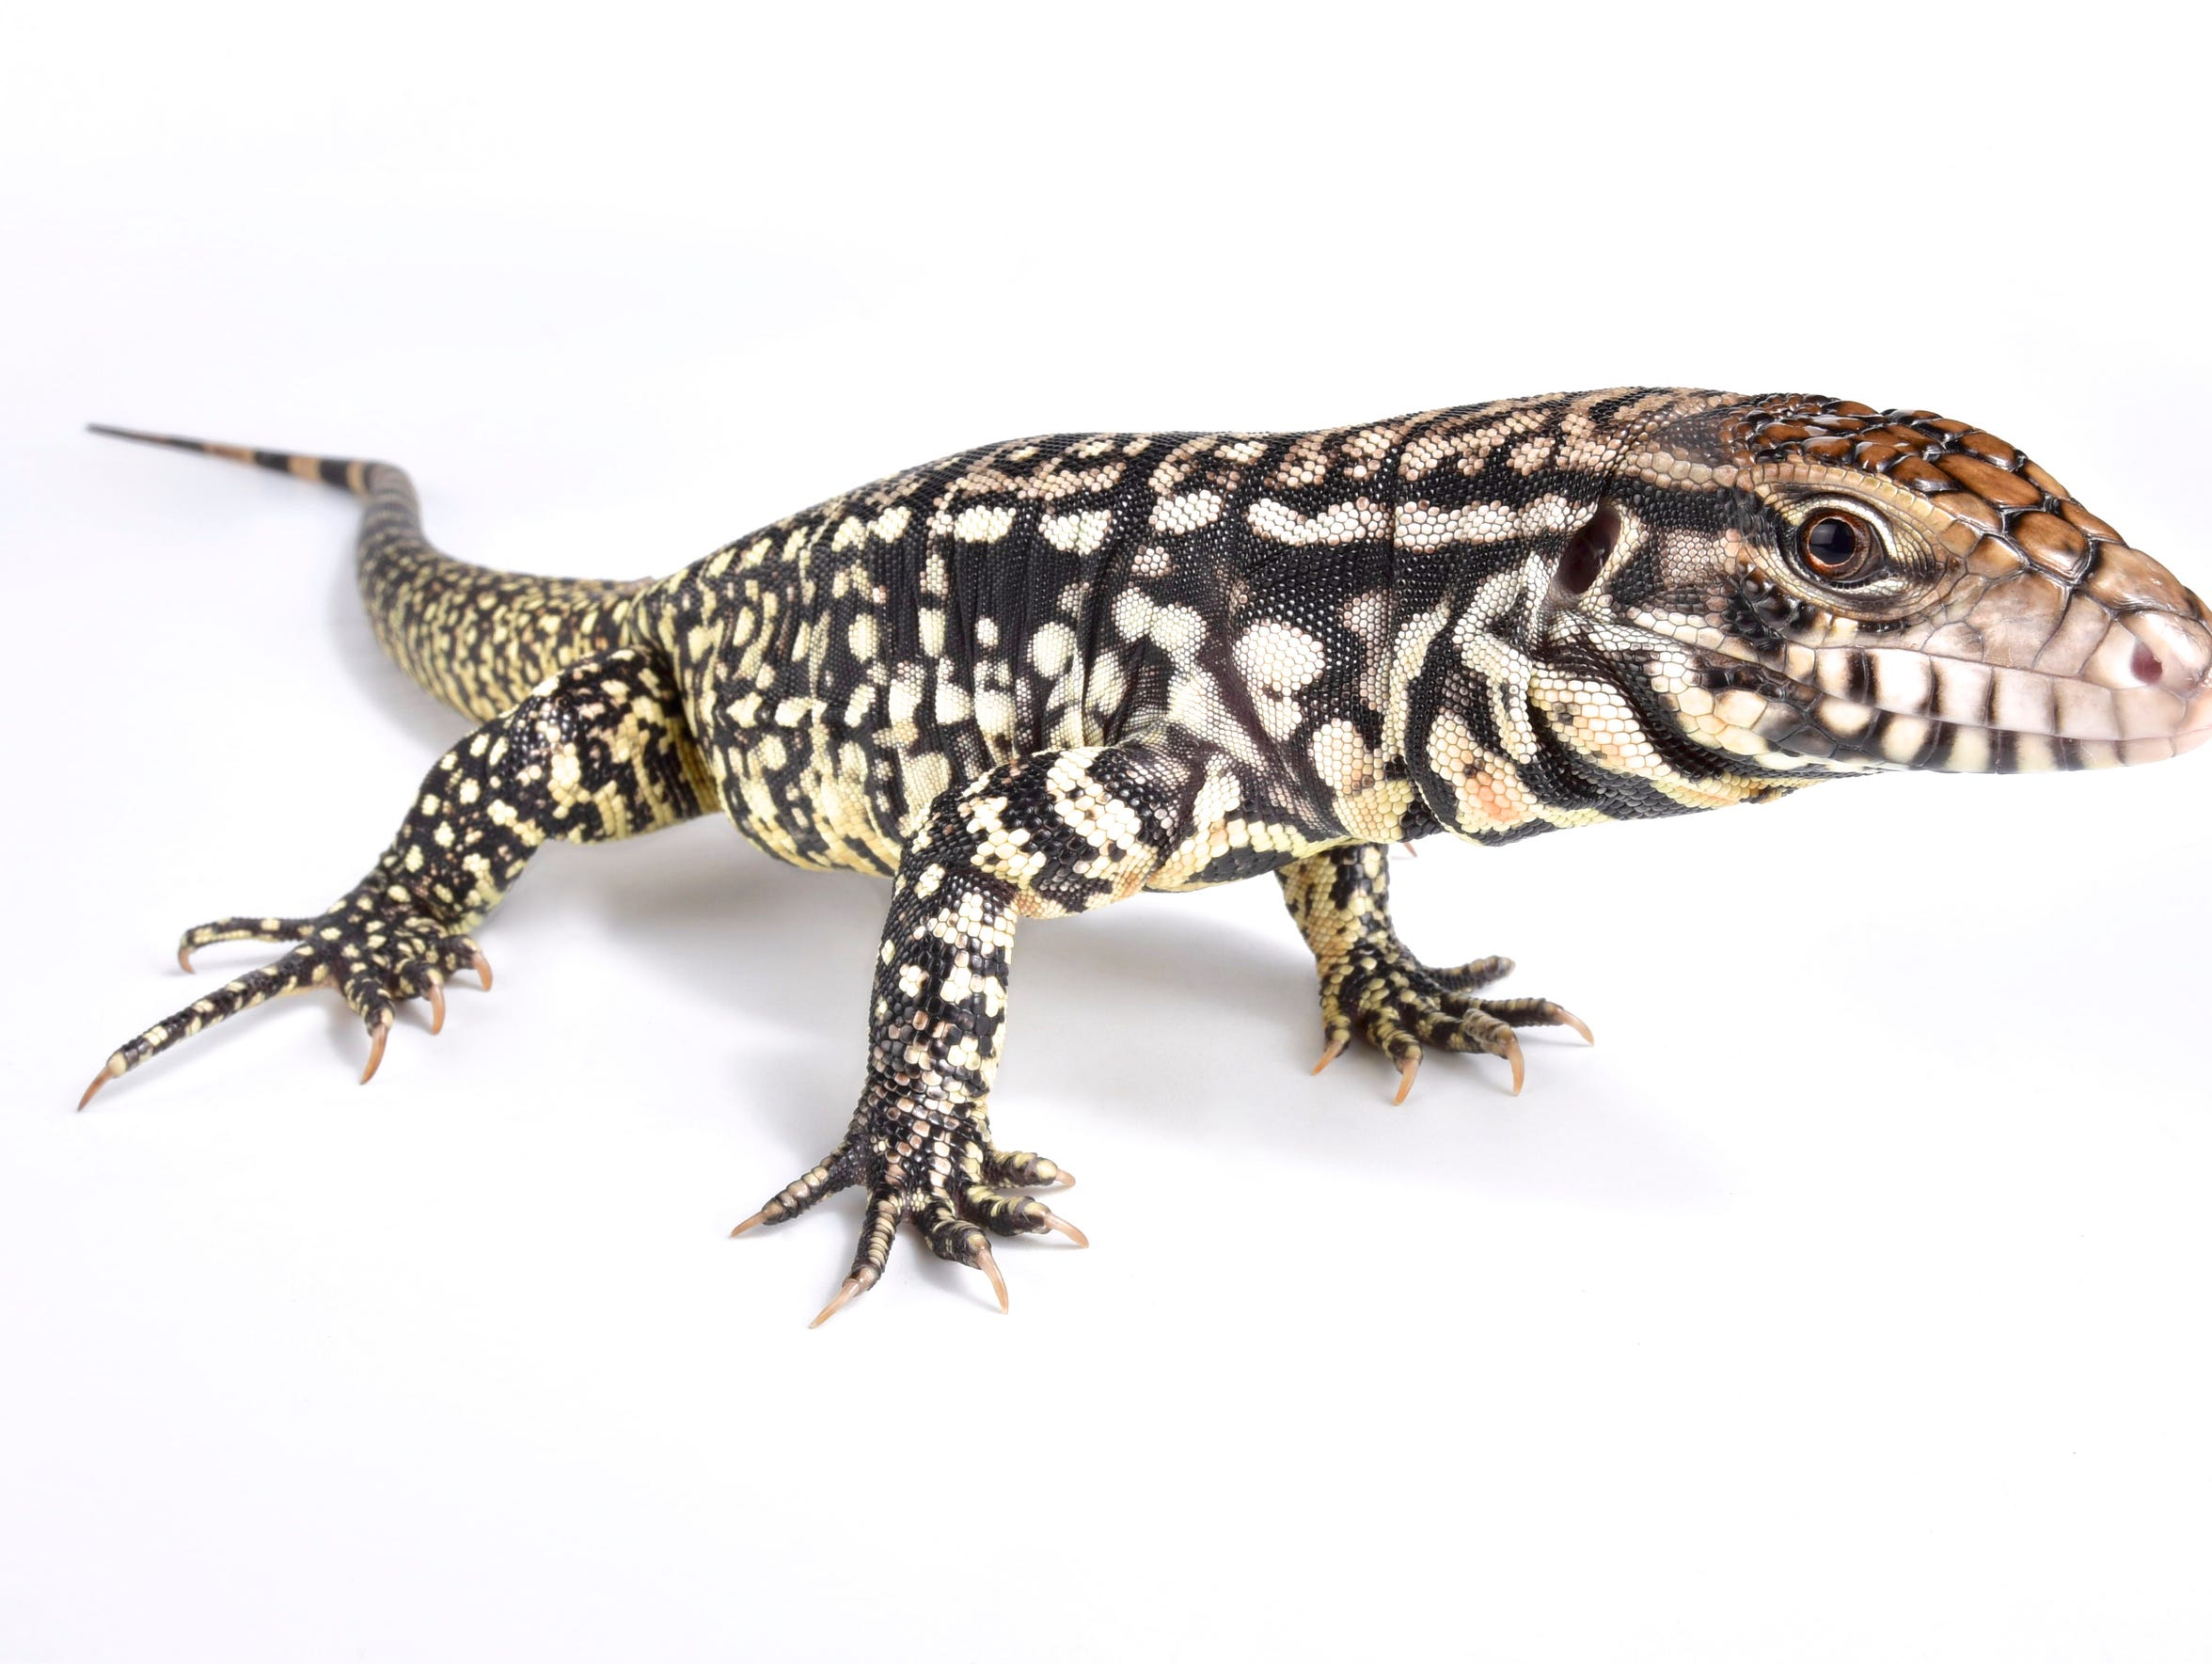 Argentine black and white tegu lizard